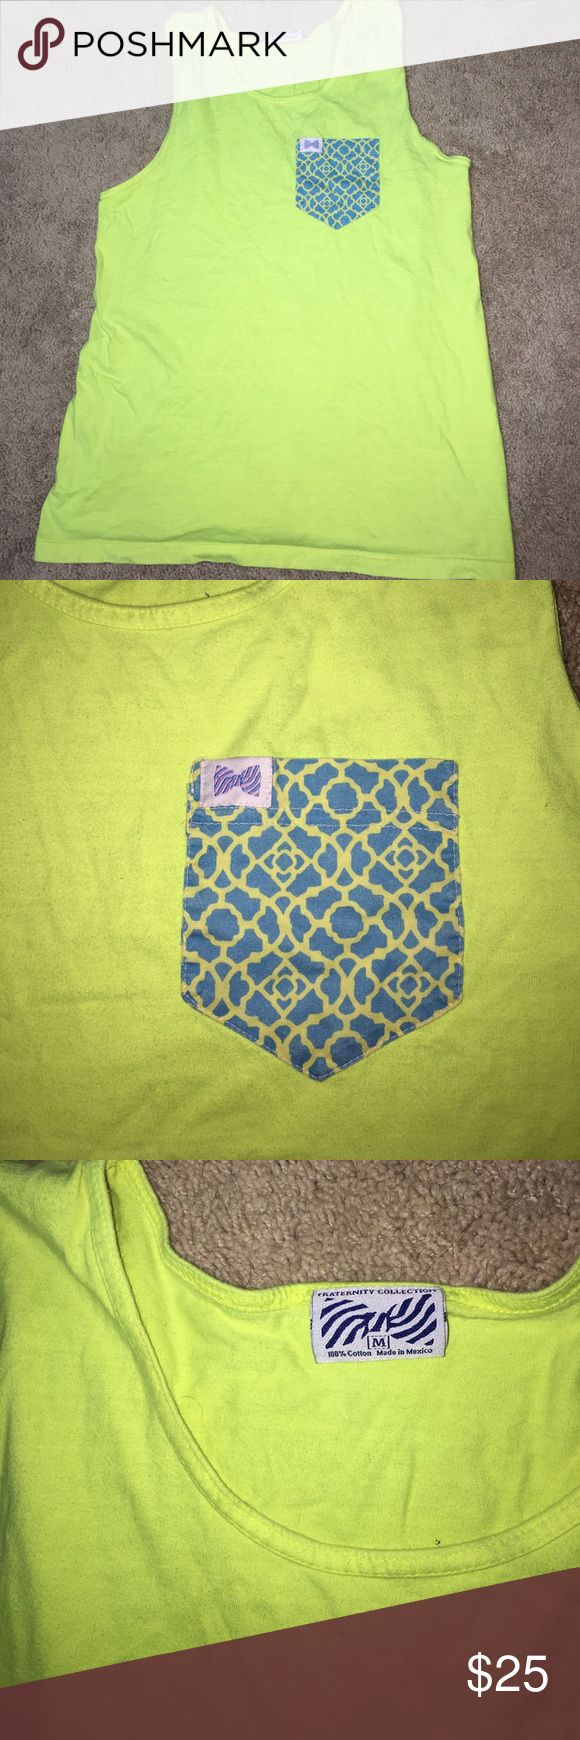 Bright Neon Fraternity Shirt(: Perfect condition! No stains,holes or wear! Worn once! Super cute just don't like it on me. Size medium but will do great on smalls too (: Vineyard Vines Tops Tank Tops